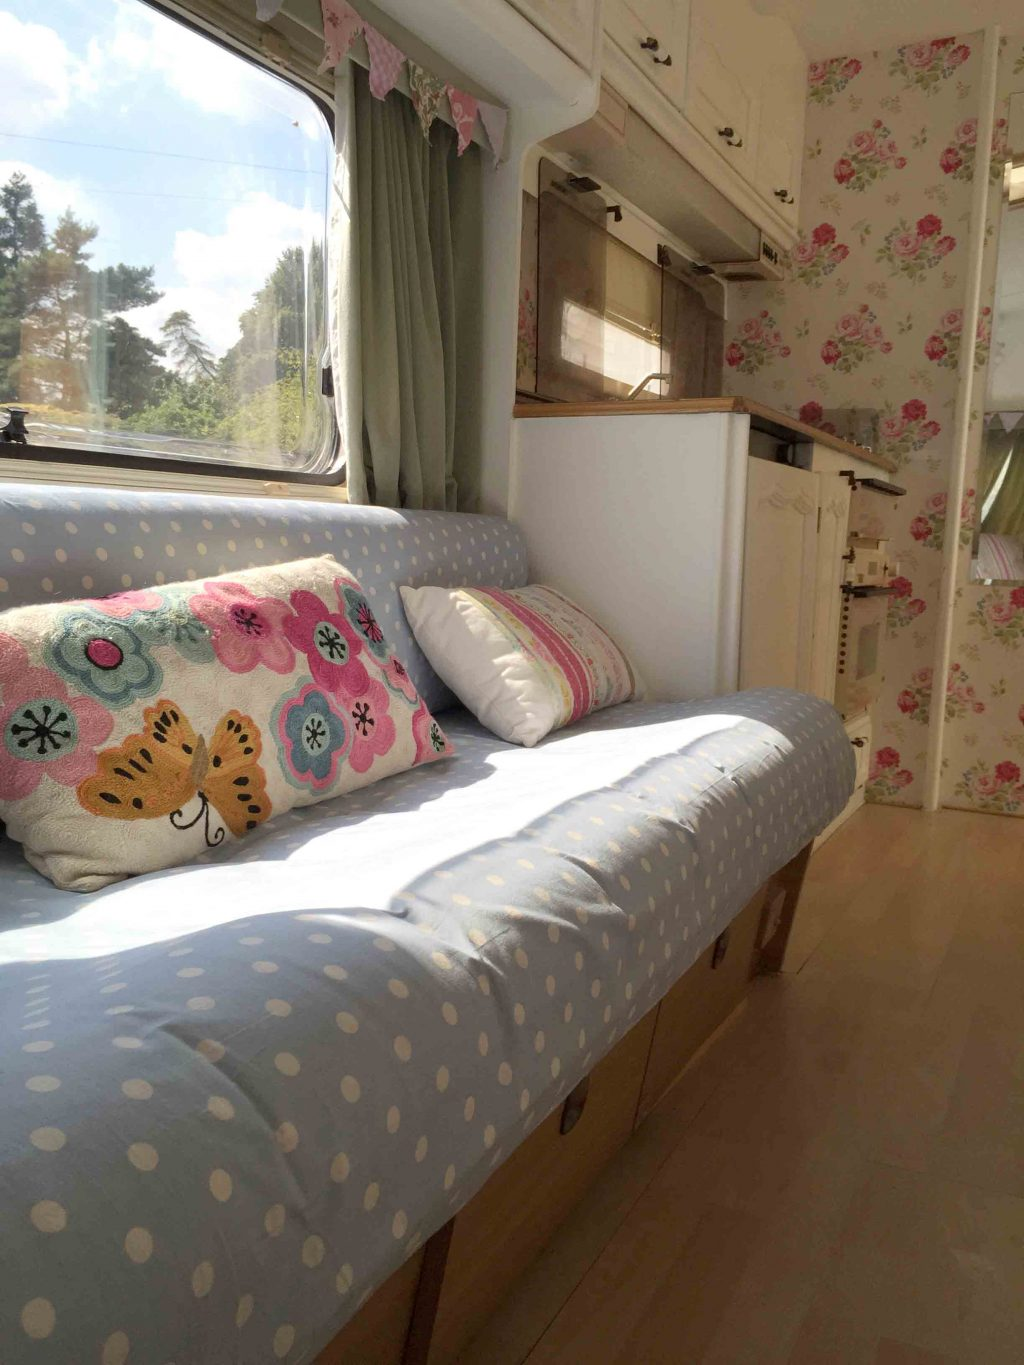 The sun coming through the window of Dolly the caravan. We used laminate on the floor and I covered the cushions with polkadot fabric. She looked so much fresher after her caravan makeover!! More info on both of my caravan makeovers on the blog!